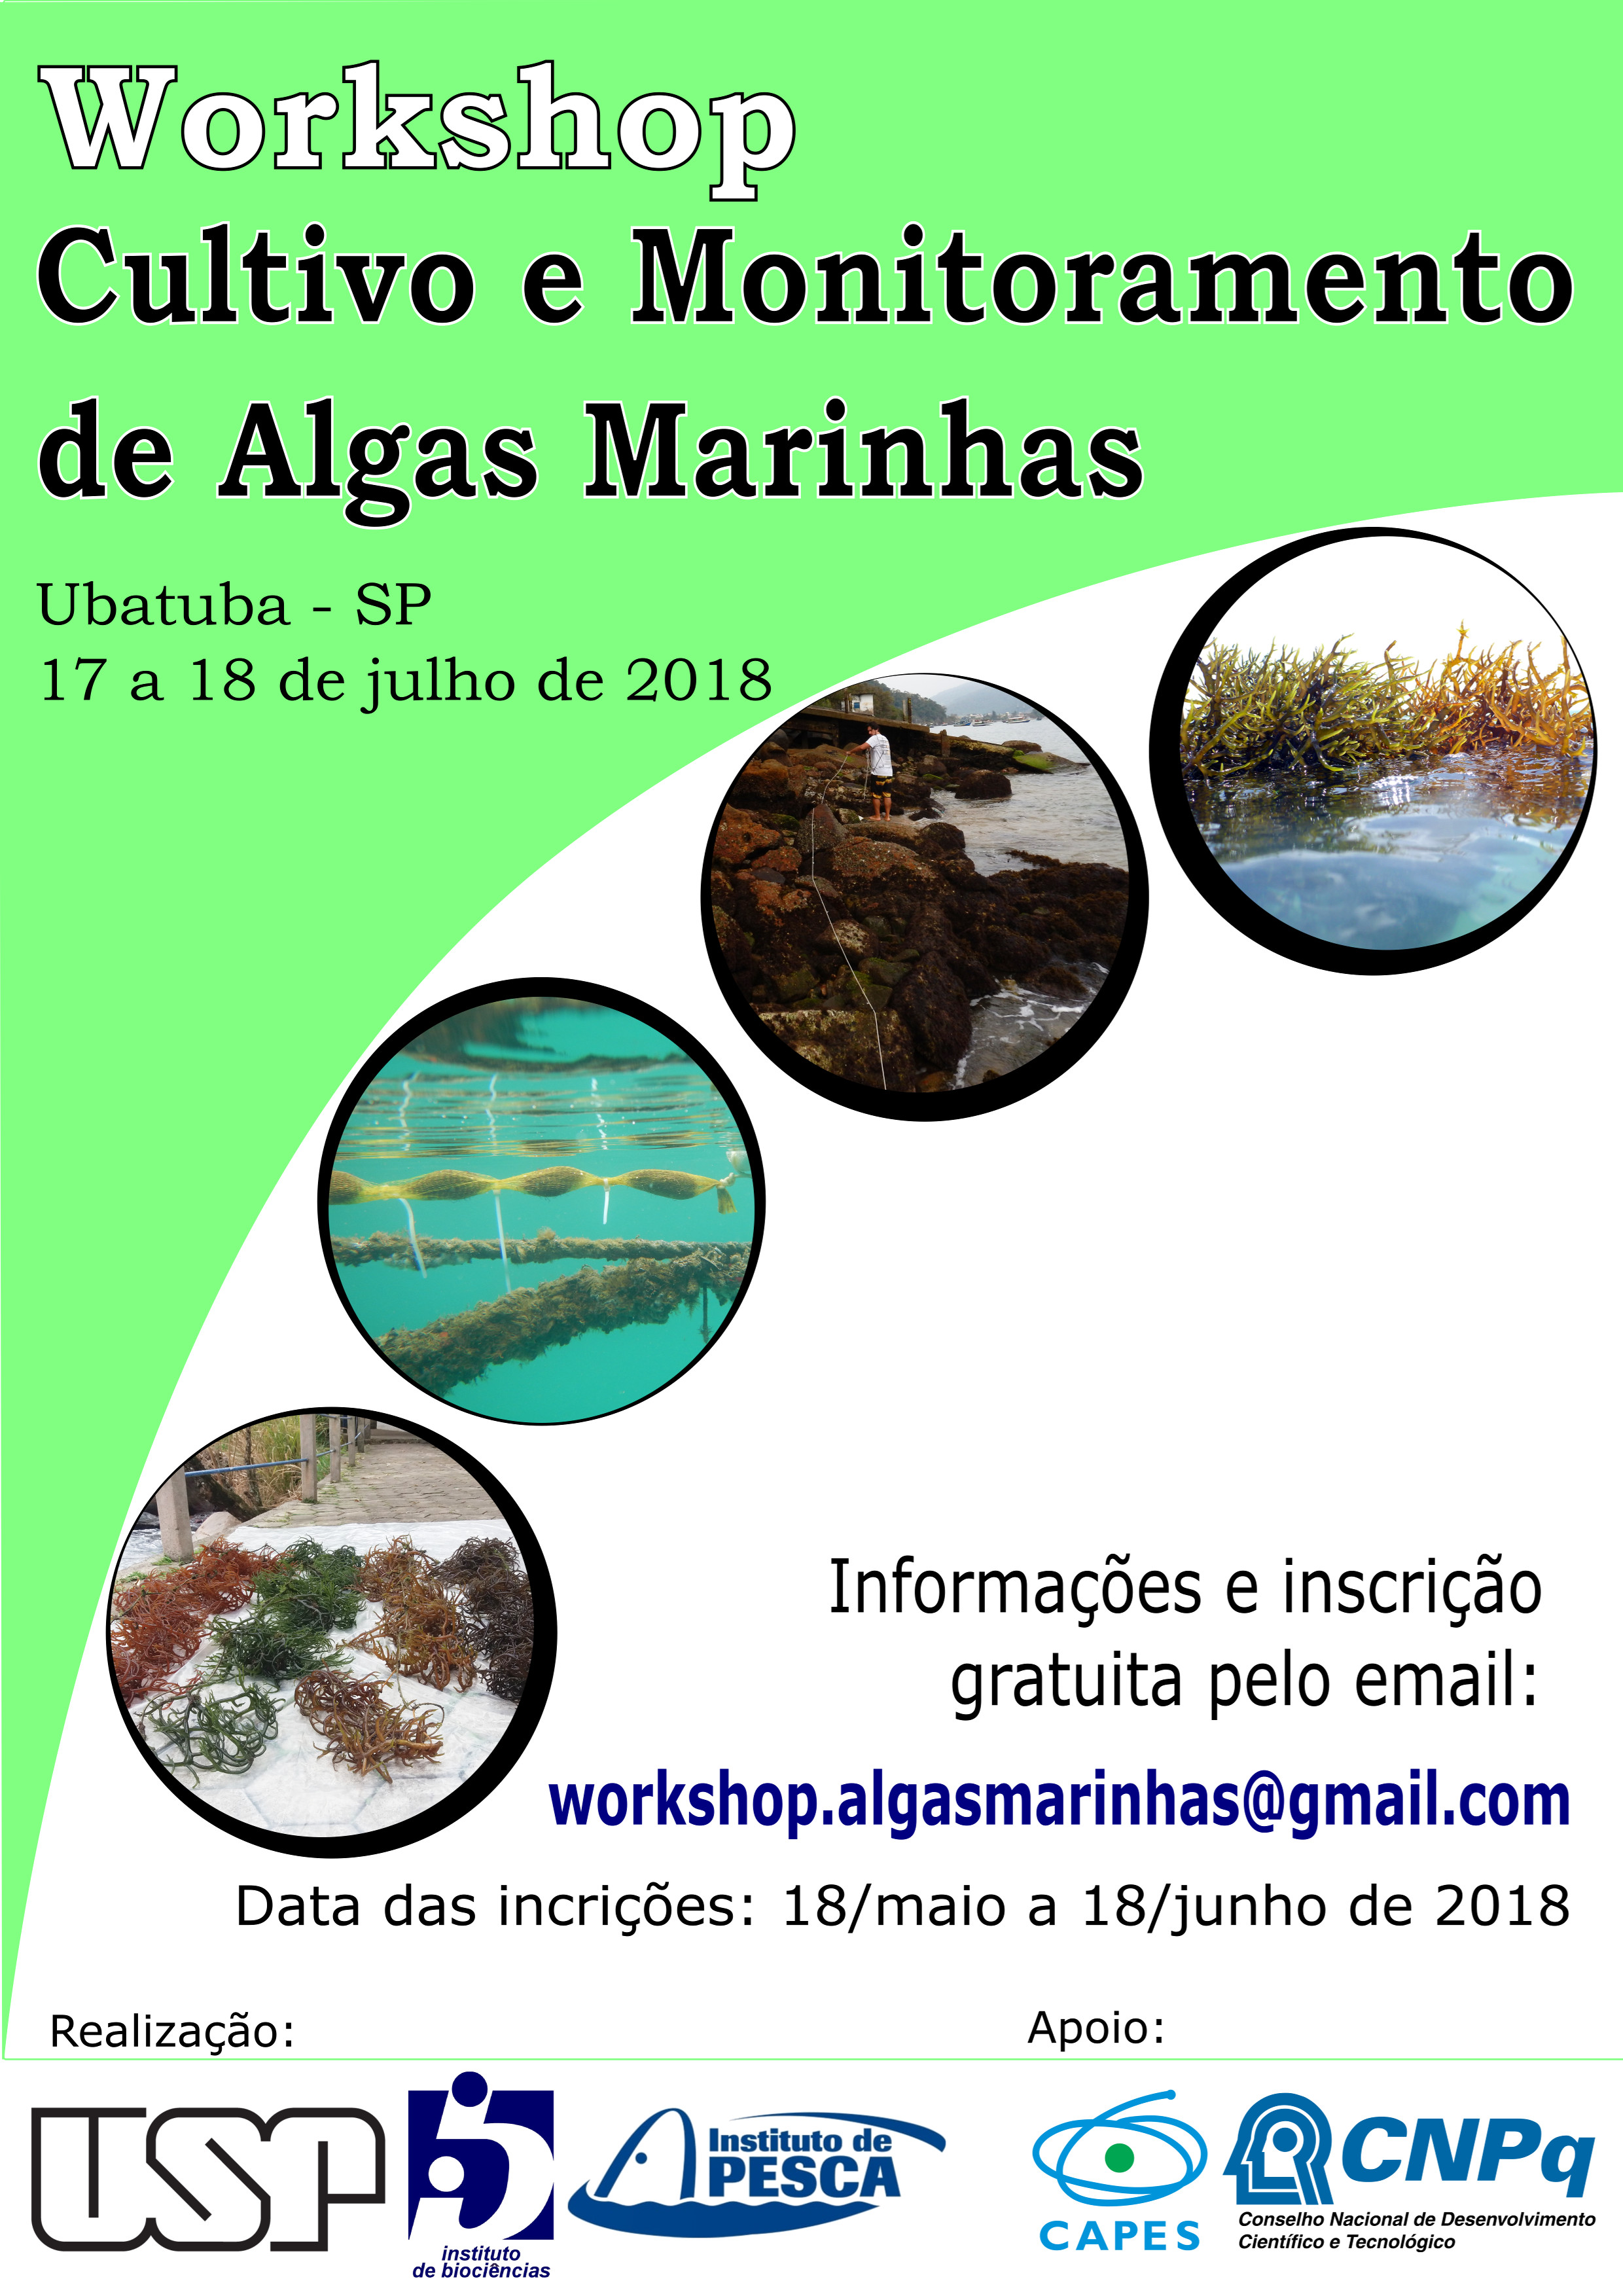 Workshop Cultivo e Monitoramento de Algas Marinhas